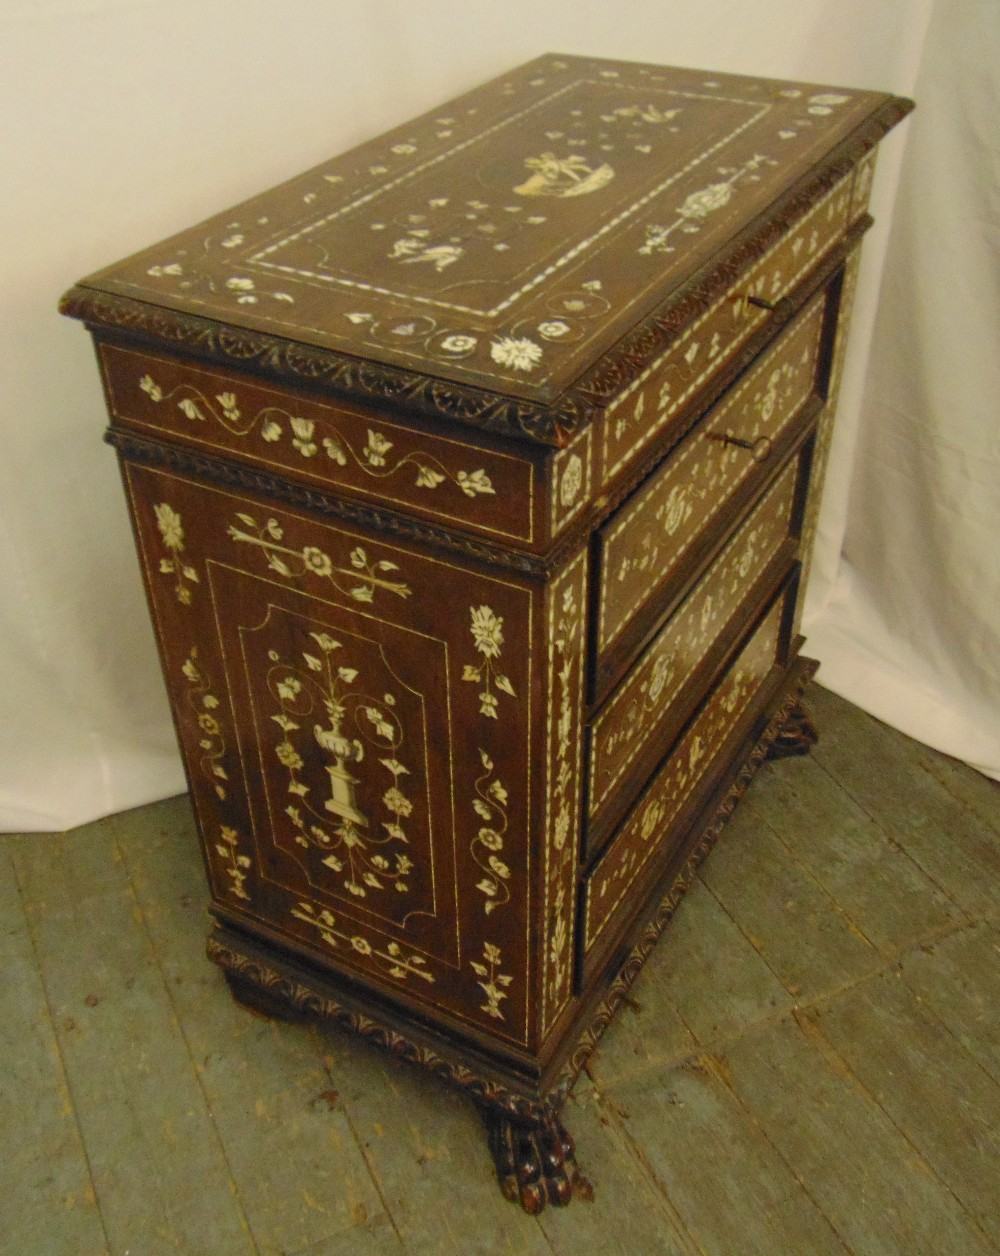 An Indo Portuguese rectangular inlaid oak chest of drawers on four claw feet, 90 x 81 x 42cm - Image 3 of 3